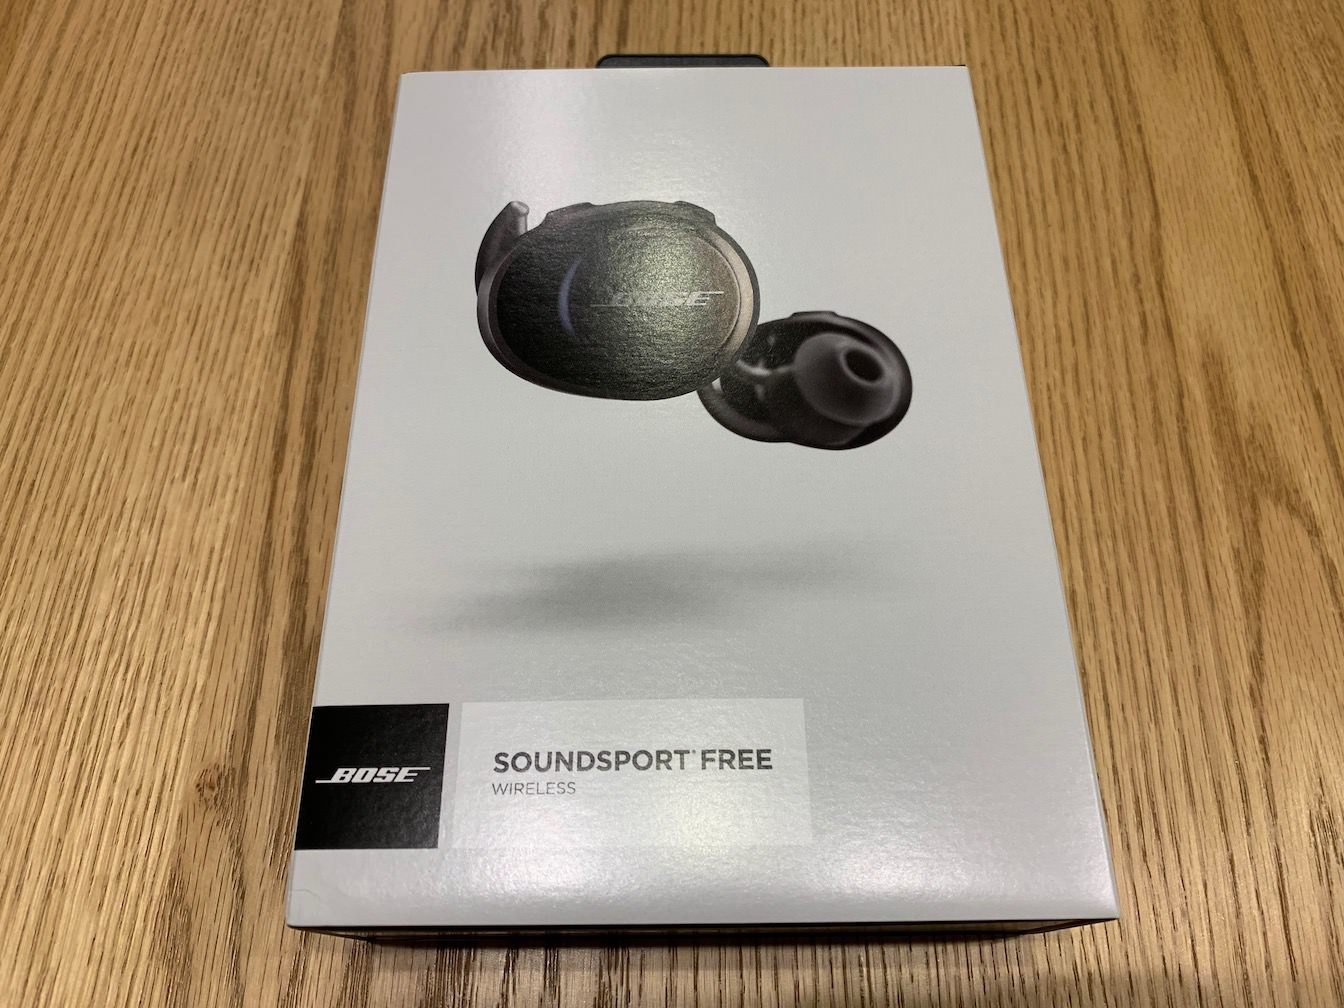 Bose SoundSport Free wireless headphones first impression 1